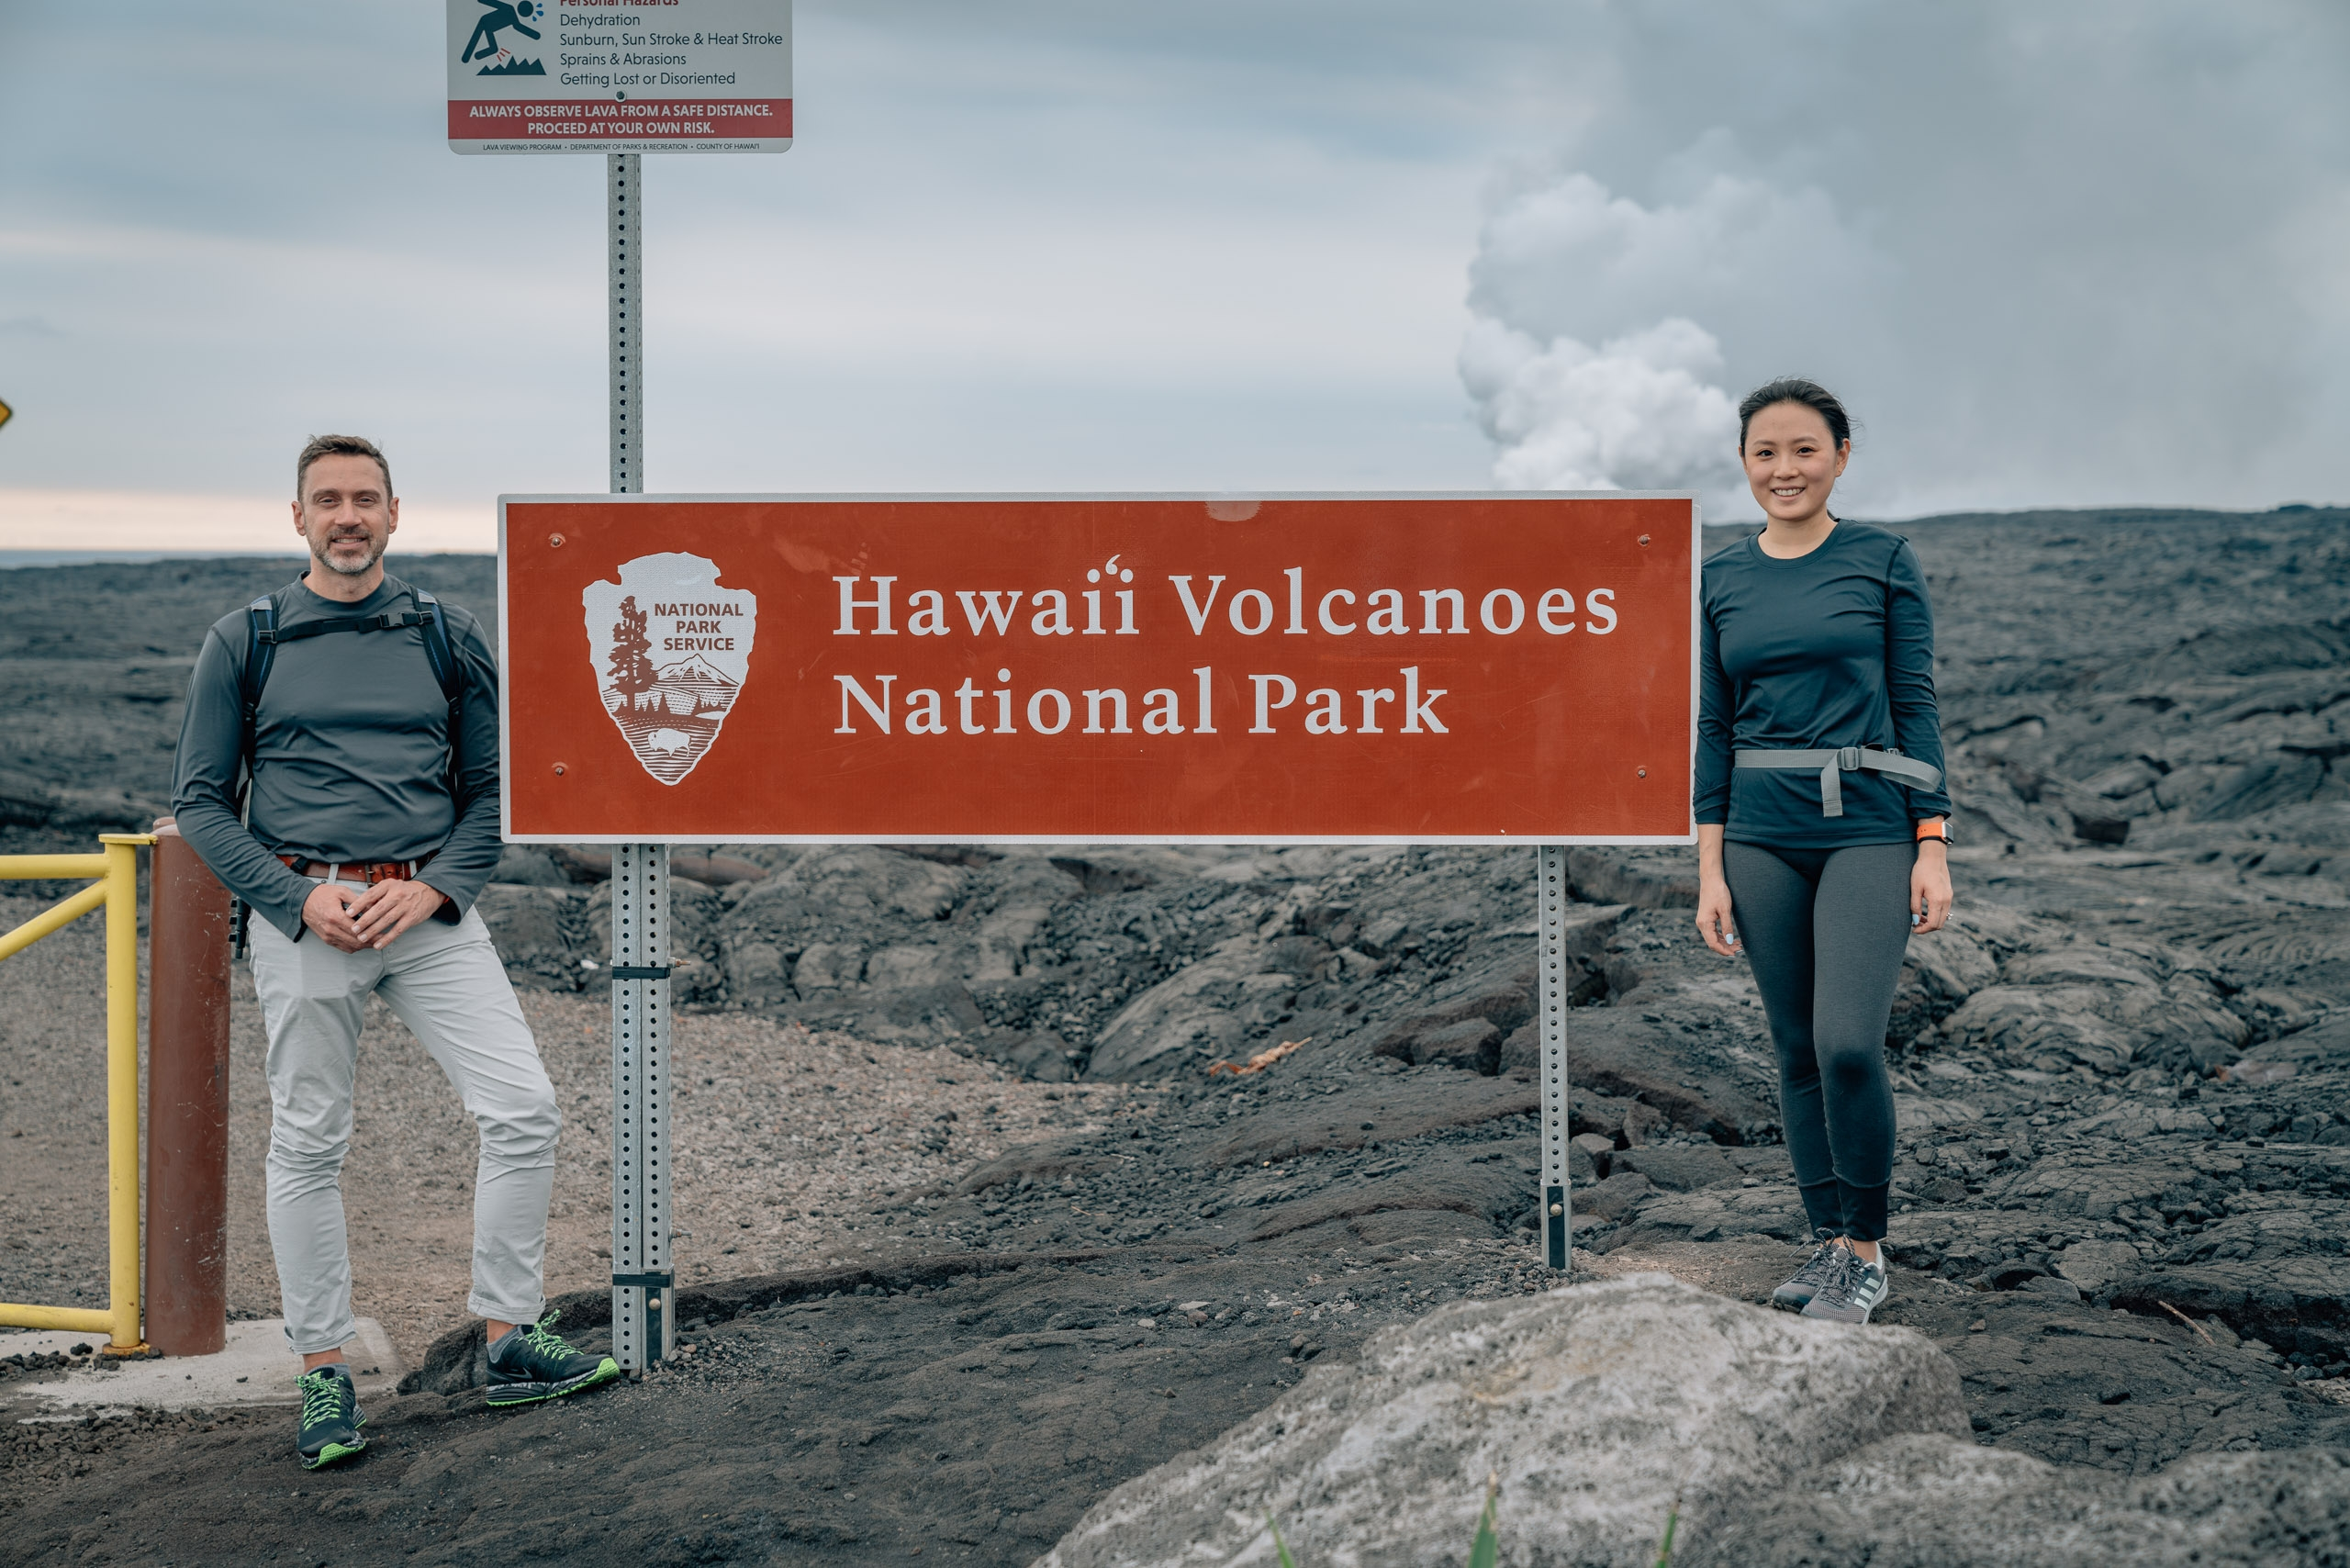 Welcome to Hawaii Volcanoes National Park 2